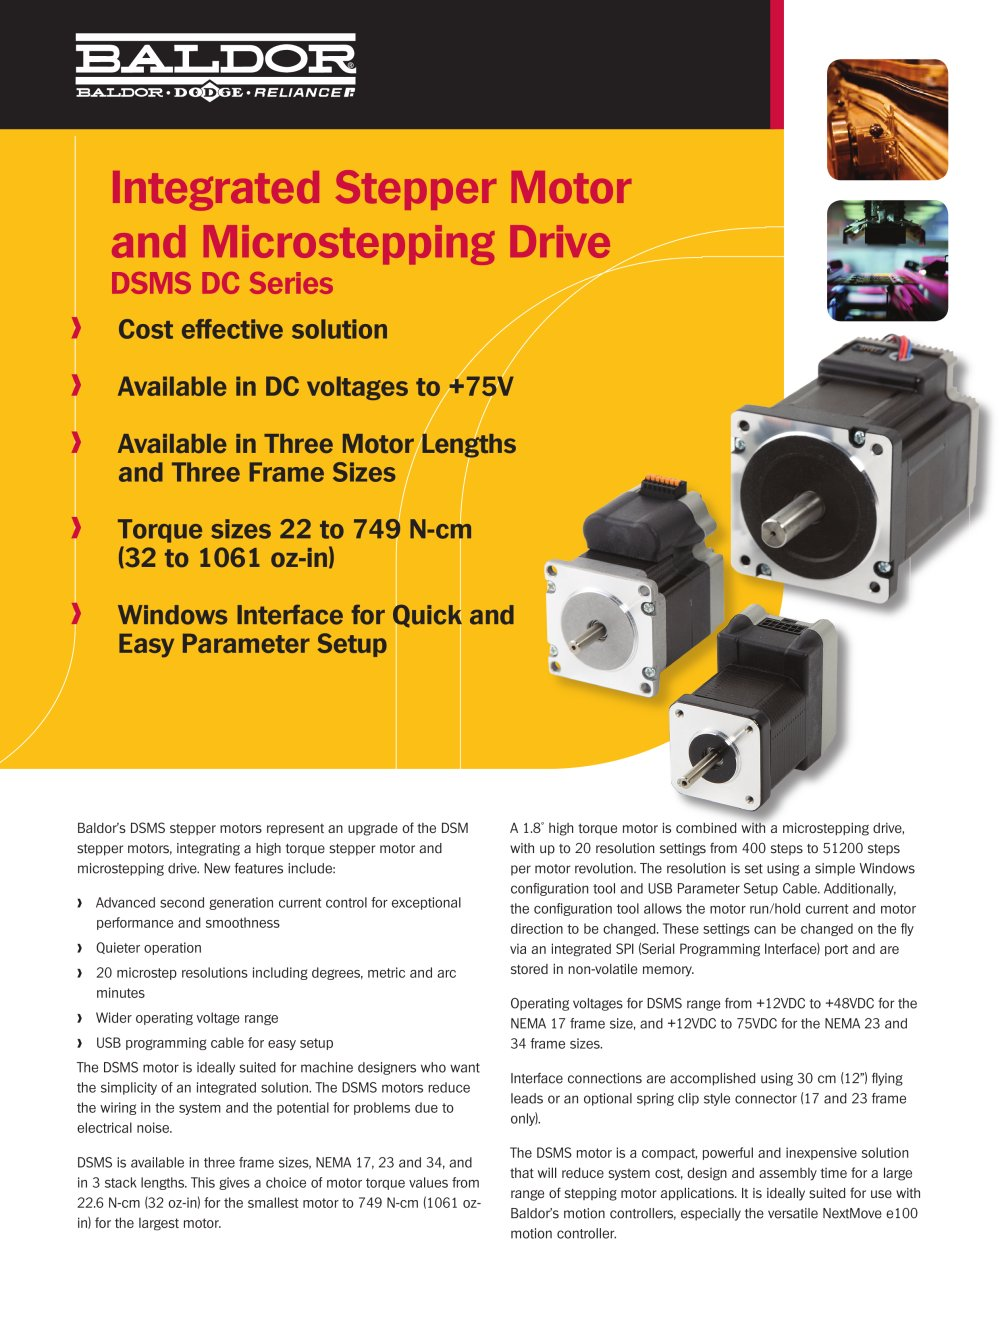 Baldor Dsms Integrated Stepper Motor And Drive Electric Motors 1 4 Pages